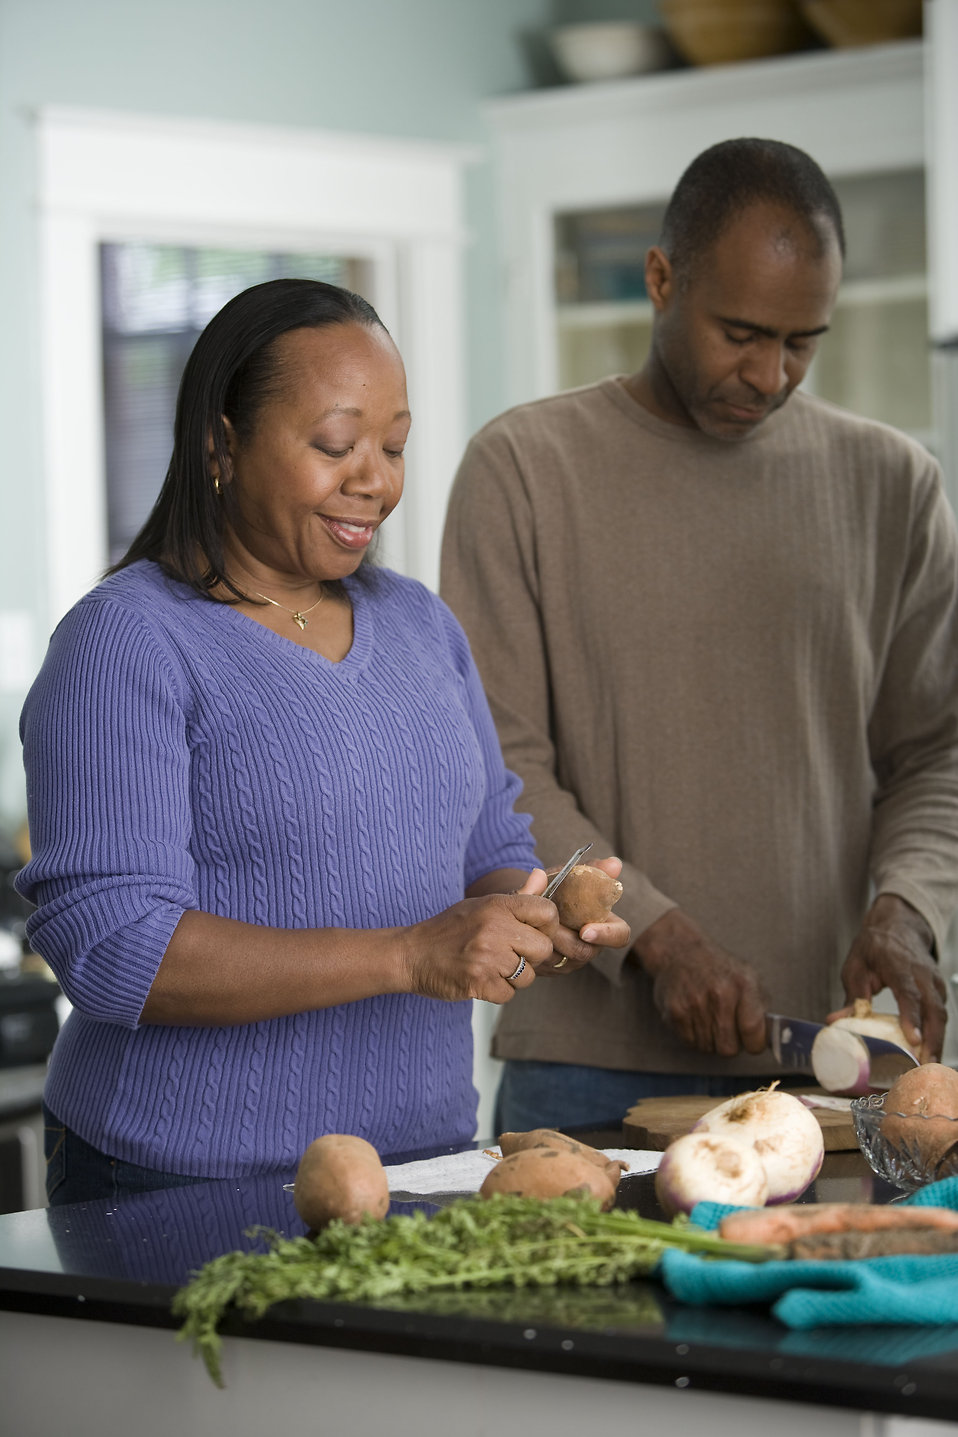 An African-American couple preparing a healthy meal : Free Stock Photo